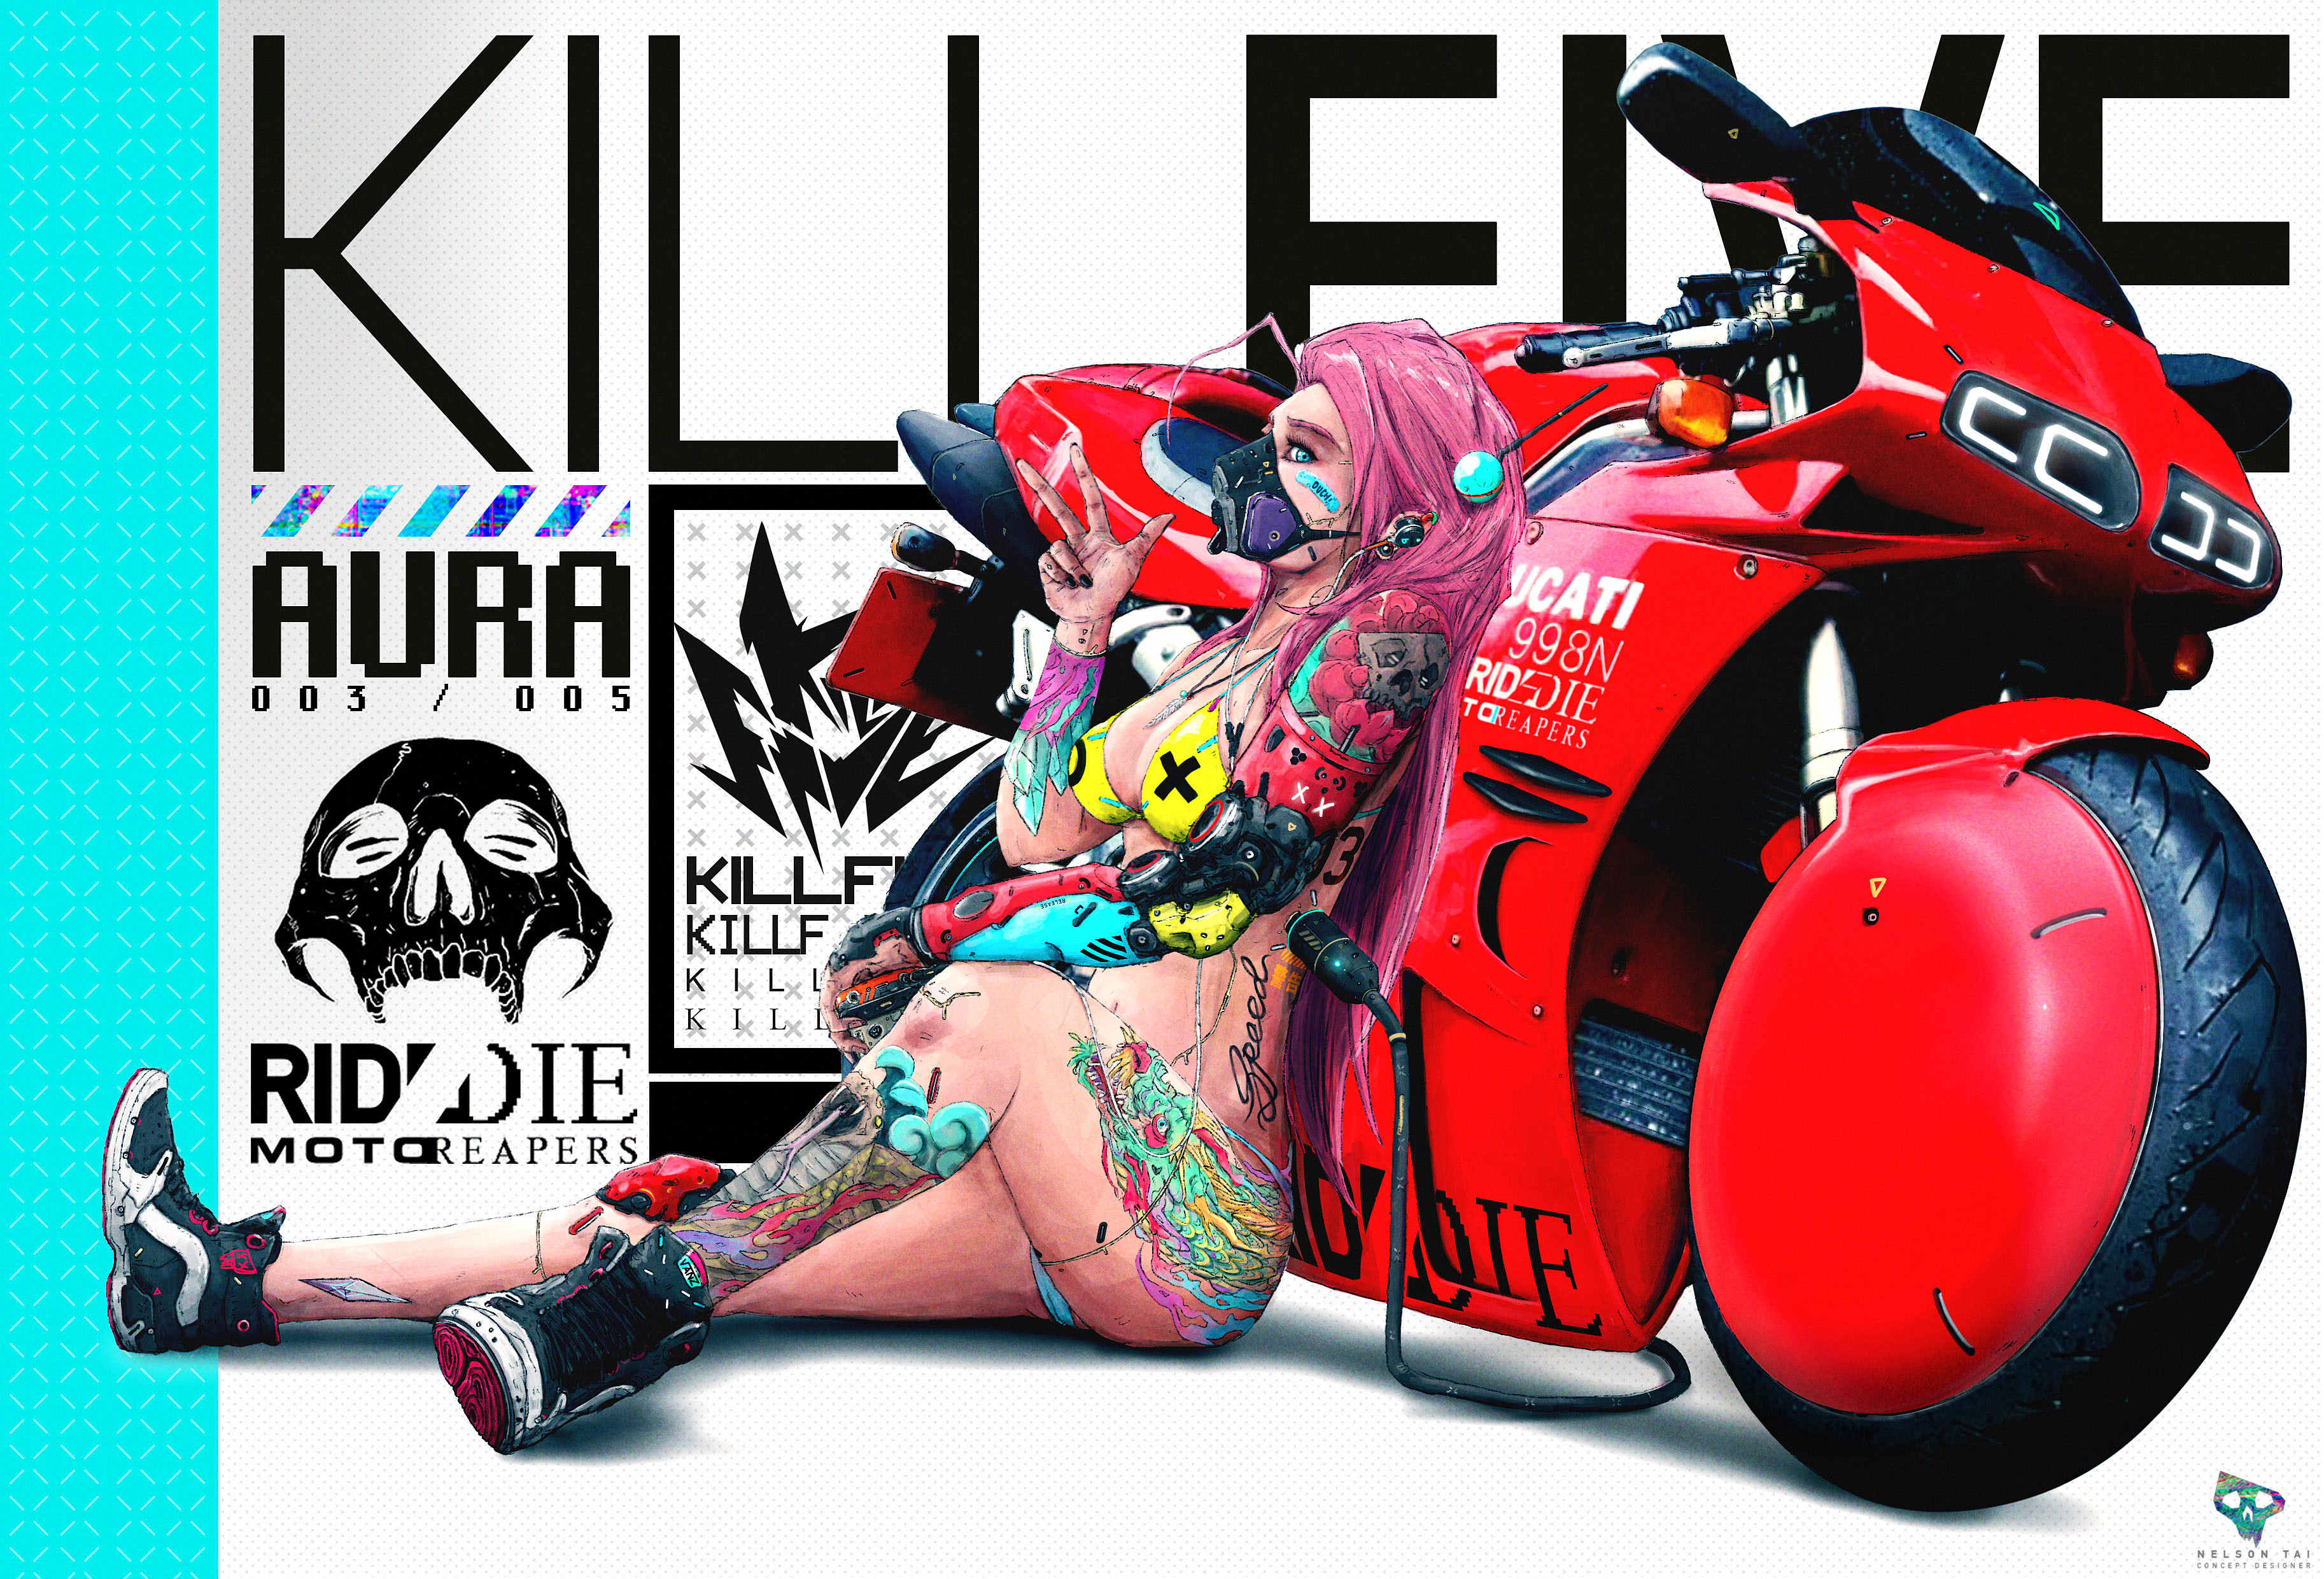 Other member of the KILLFIVE crew - AURA